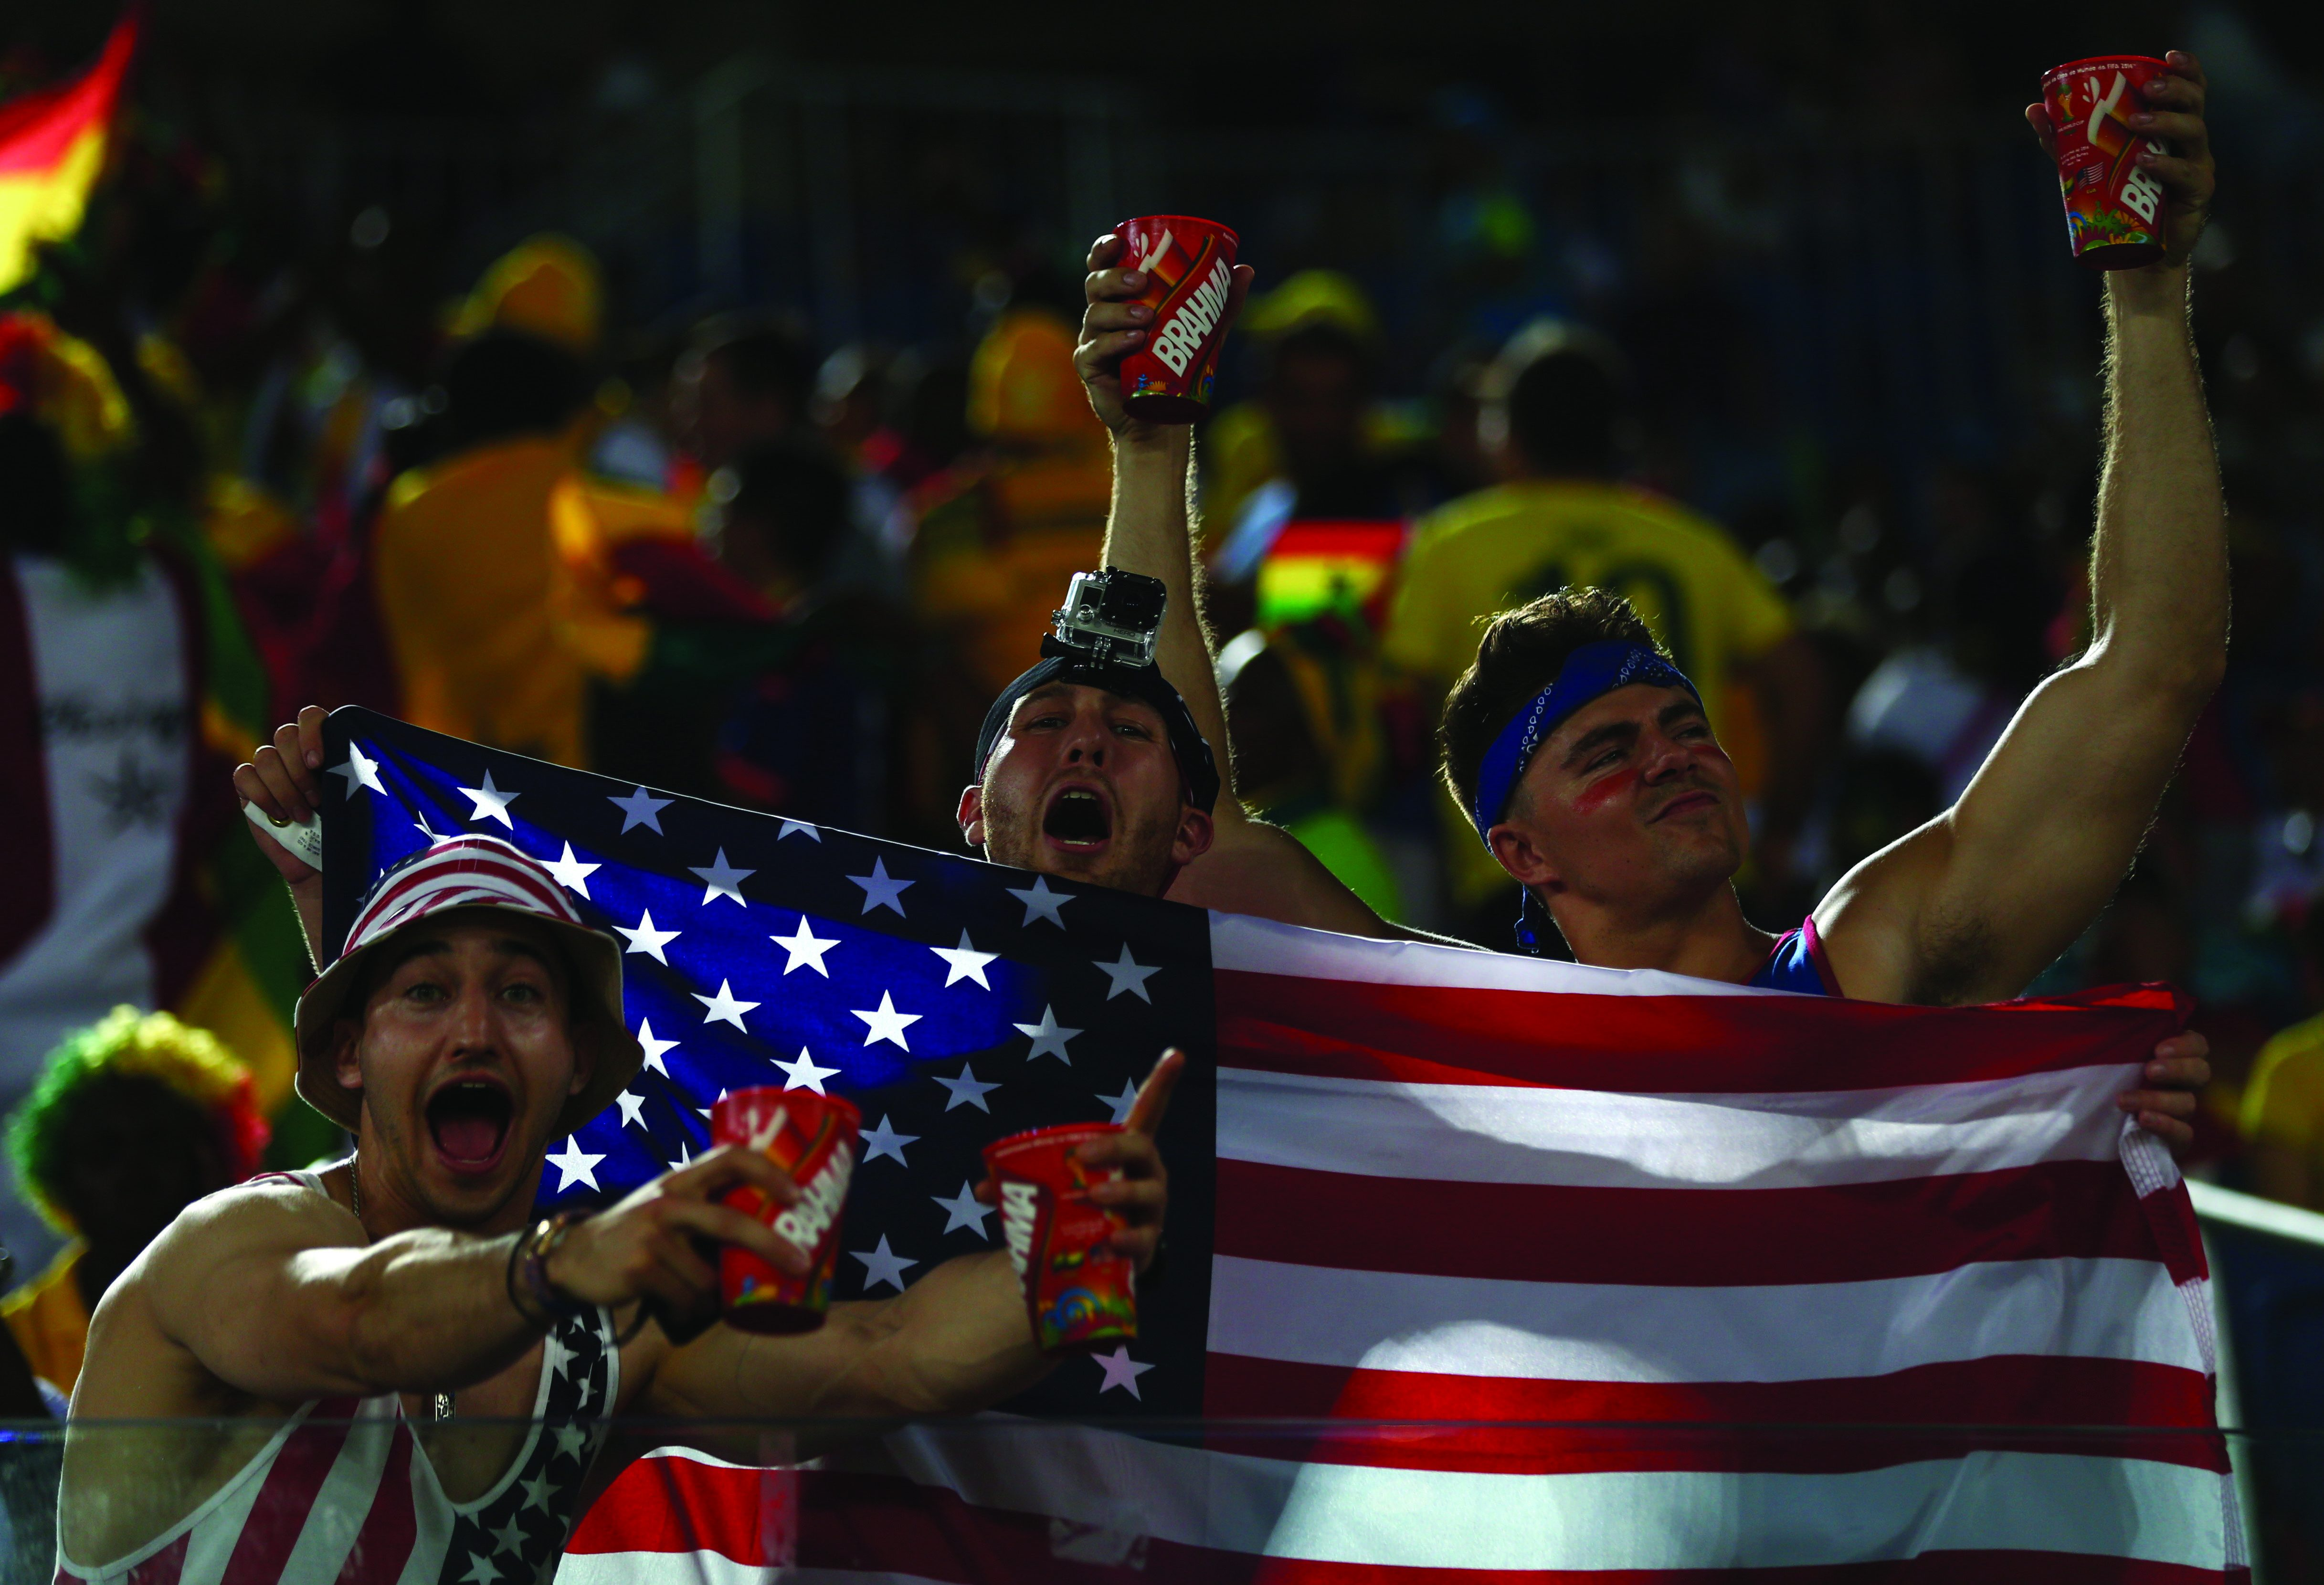 During the 2014 FIFA World Cup Brazil Group G match between Ghana and the United States at Estadio das Dunas on June 16, 2014 in Natal, Brazil. Photo courtesy of Continental AG / image.net